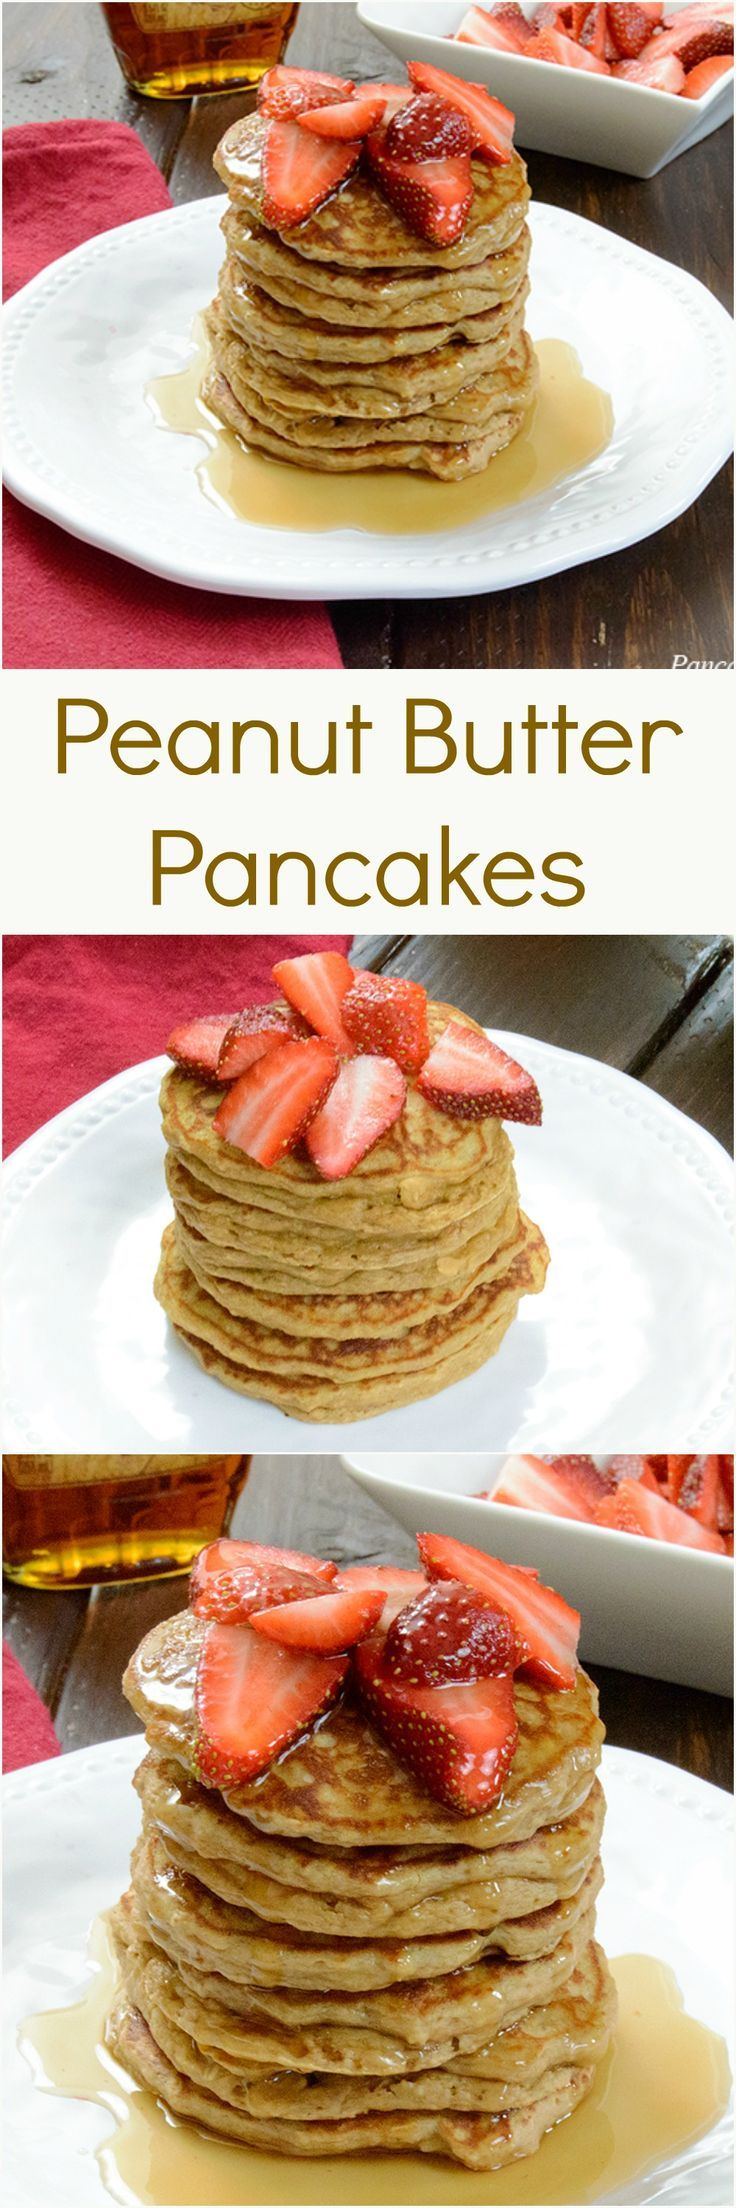 Fluffy Peanut Butter Protein Pancakes - low fat, high protein, gluten free pancakes are the perfect way to start the day! You won't believe how healthy these are!